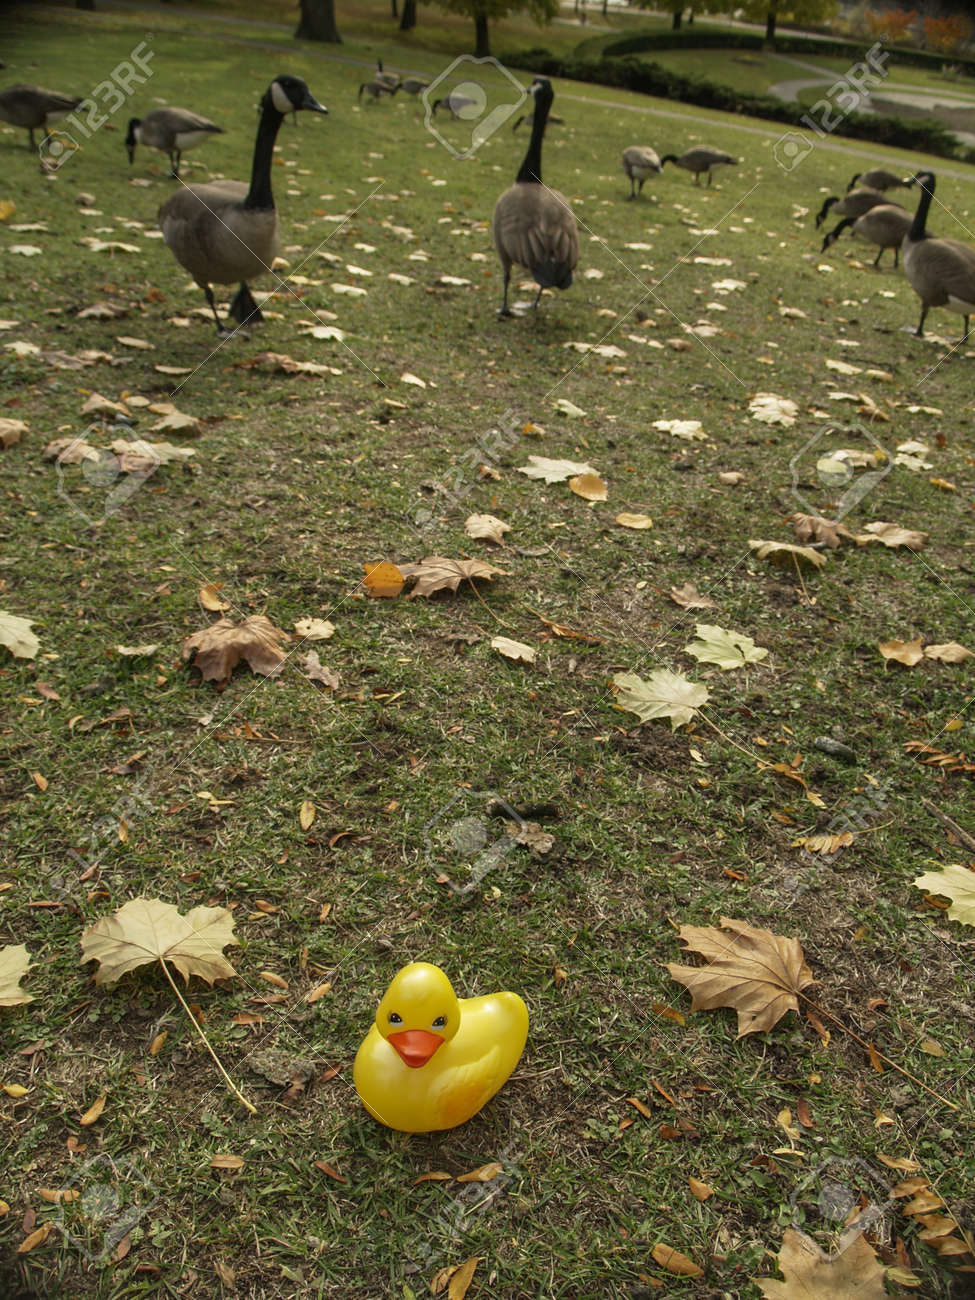 Yellow Rubber Duck Apart From Canada Geese Feeding On Grass At ...